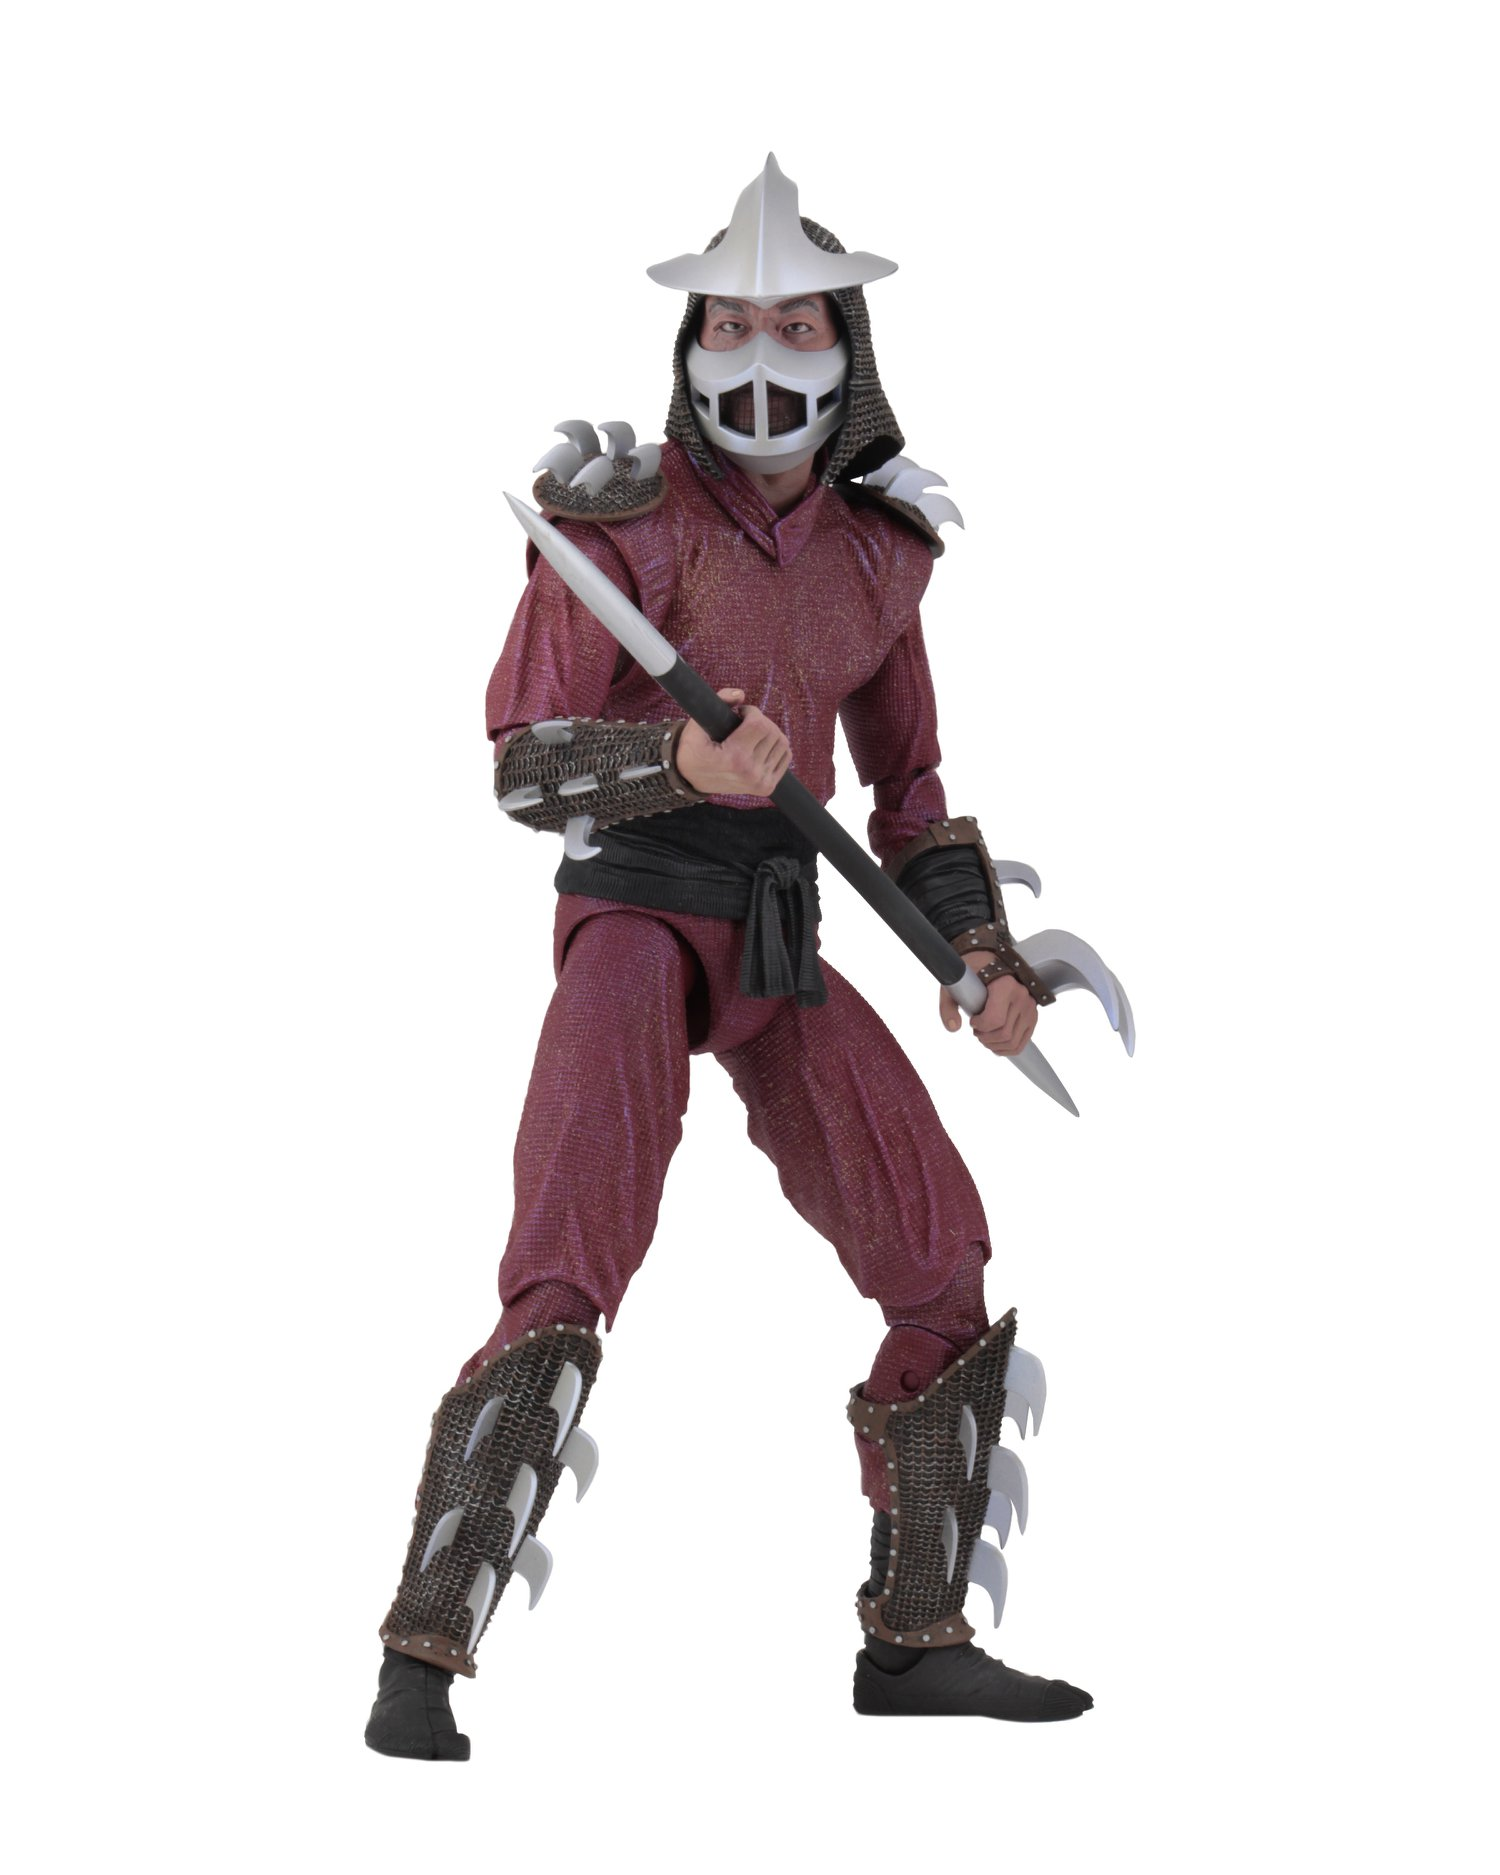 TMNT 1990 Movie Shredder 1/4 Scale Figure by NECA - The ...